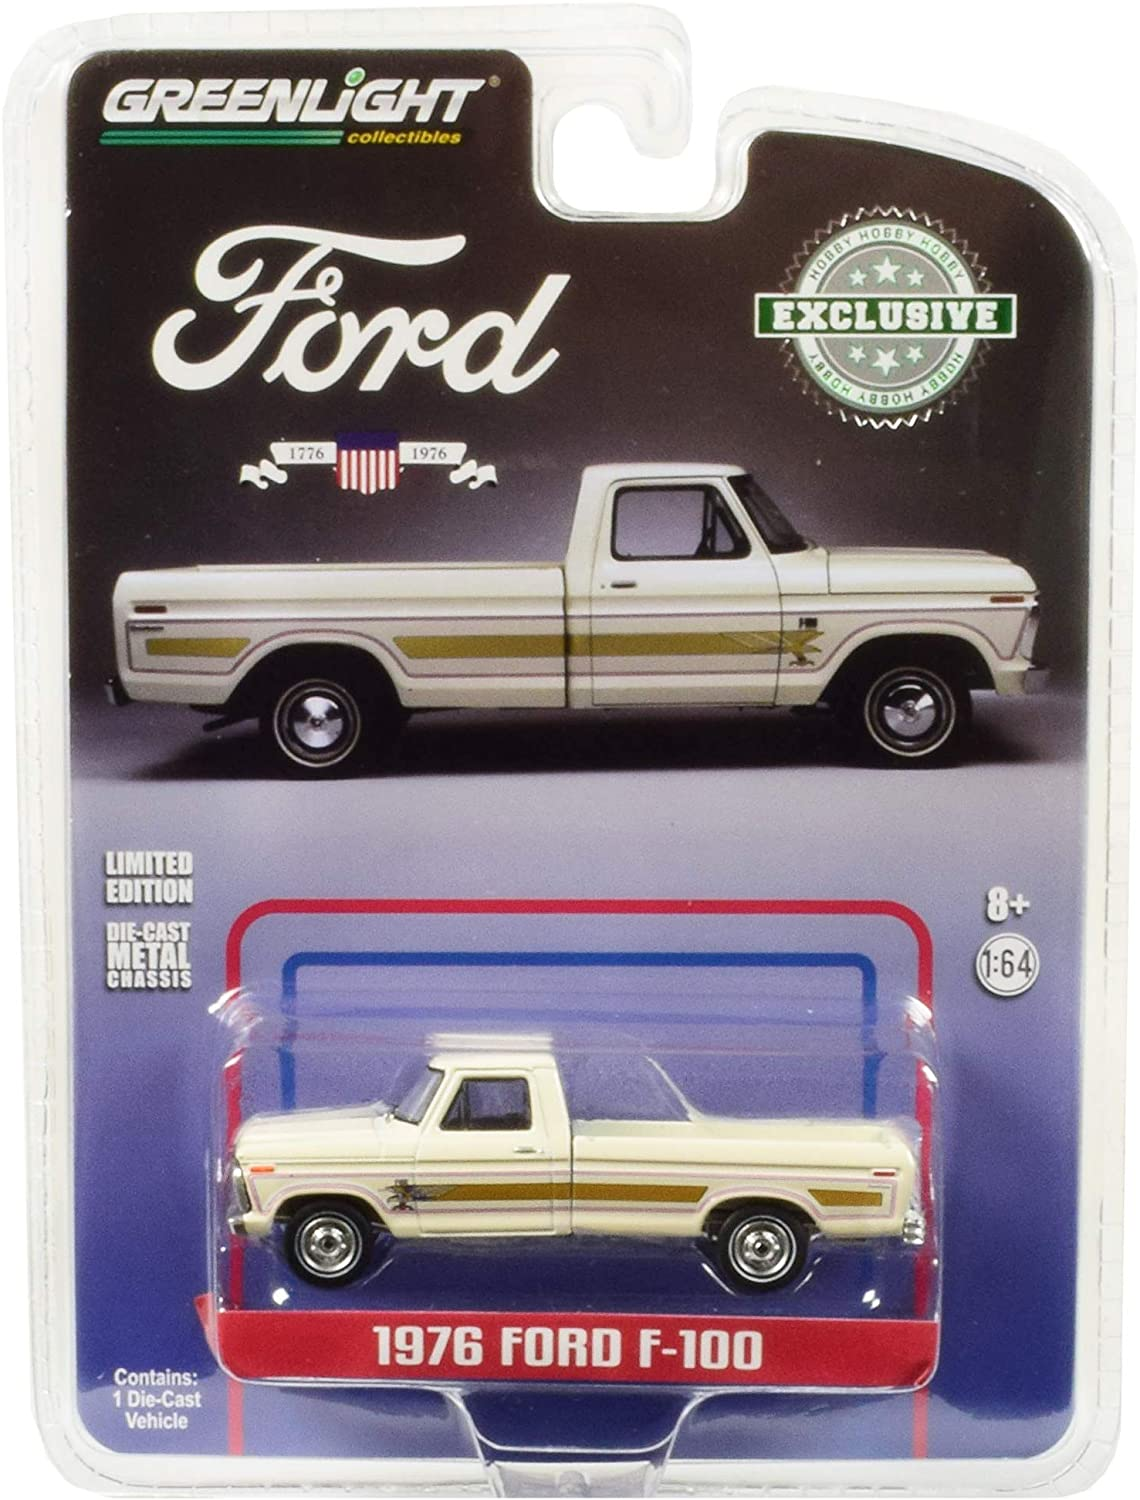 Greenlight 29965 1976 Ford F-100 Pickup Truck Bicentennial Wimbledon White Hobby Exclusive 1/64 Diecast Model Car, Multicolor